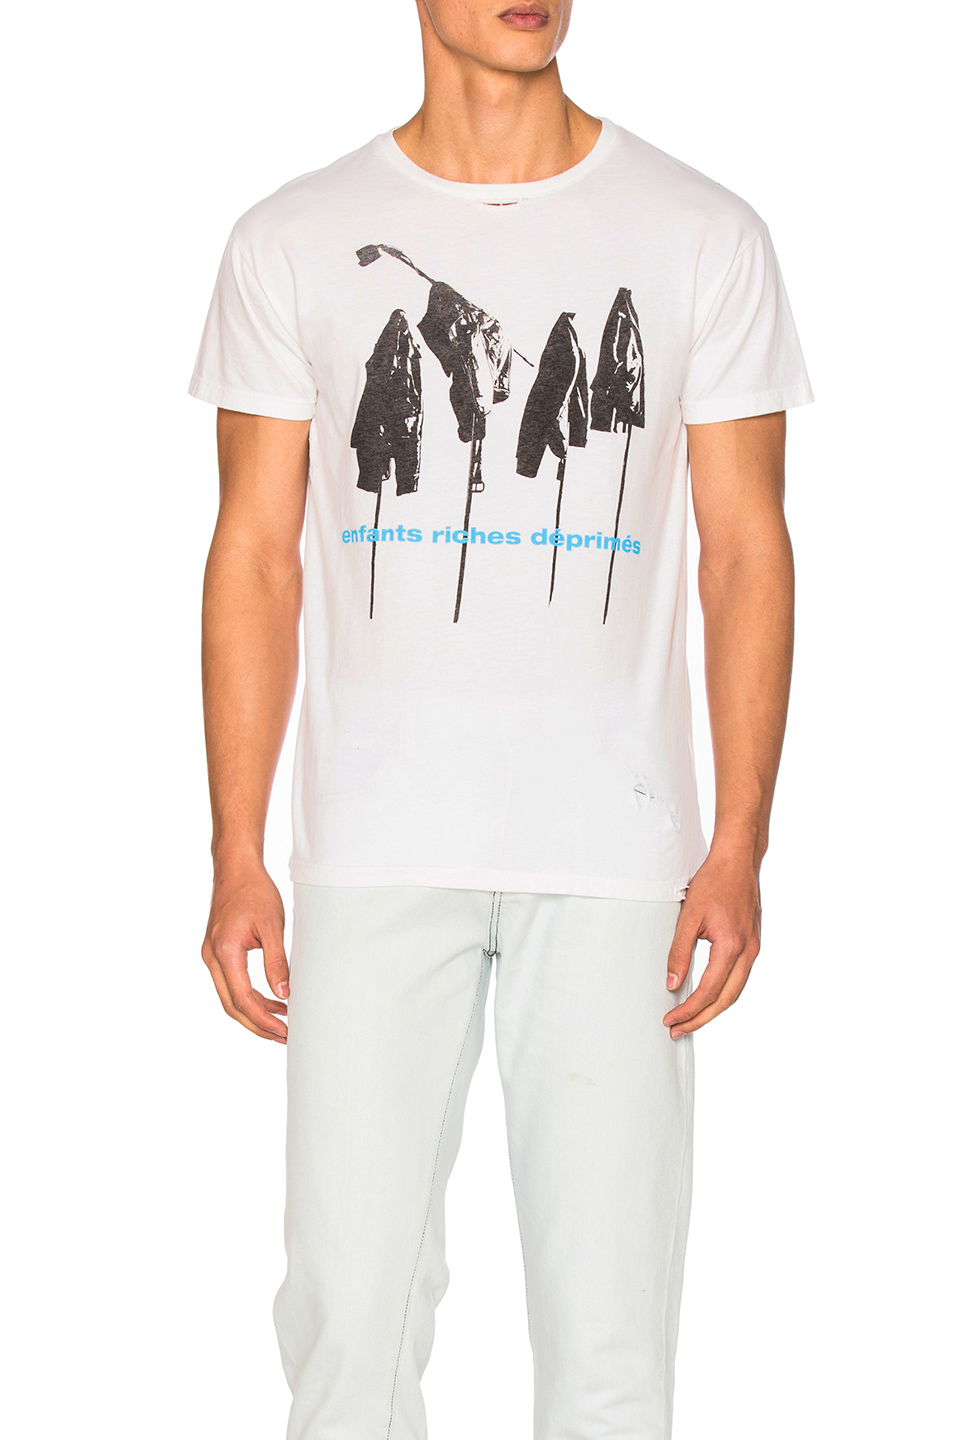 Enfants Riches Deprimes Repetition Tee in White